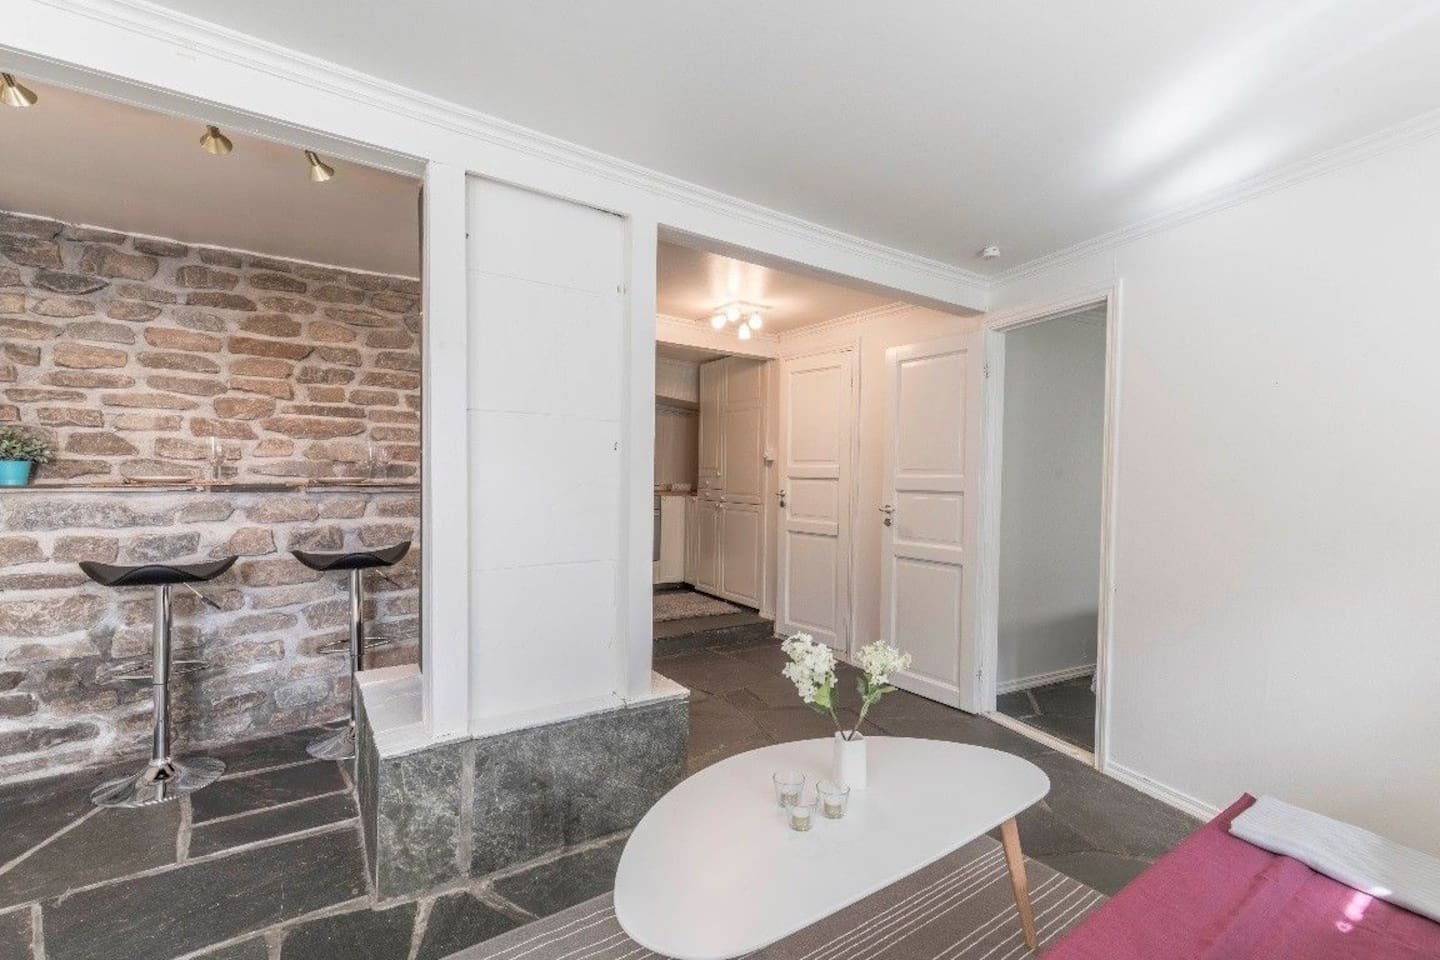 Entering the apartment, you'll experience the cozy and intimate feel of the apartment.